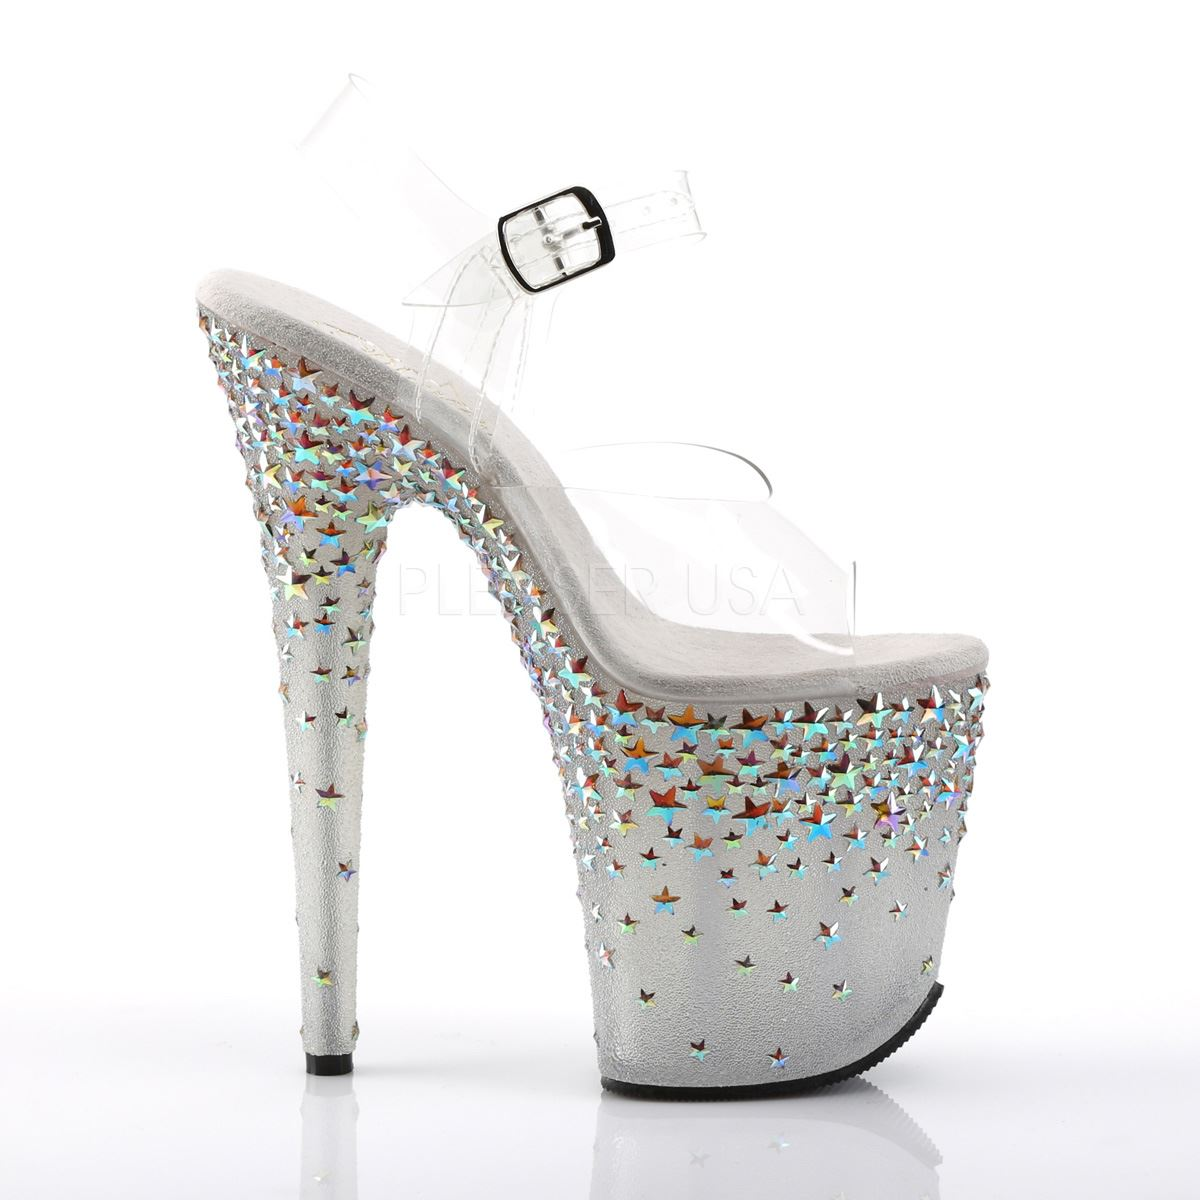 Pleaser Clear/Frost(Silver Platform Ankle Strap Sandal Clear/Frost(Silver Pleaser Hologram Stars) b5e84b